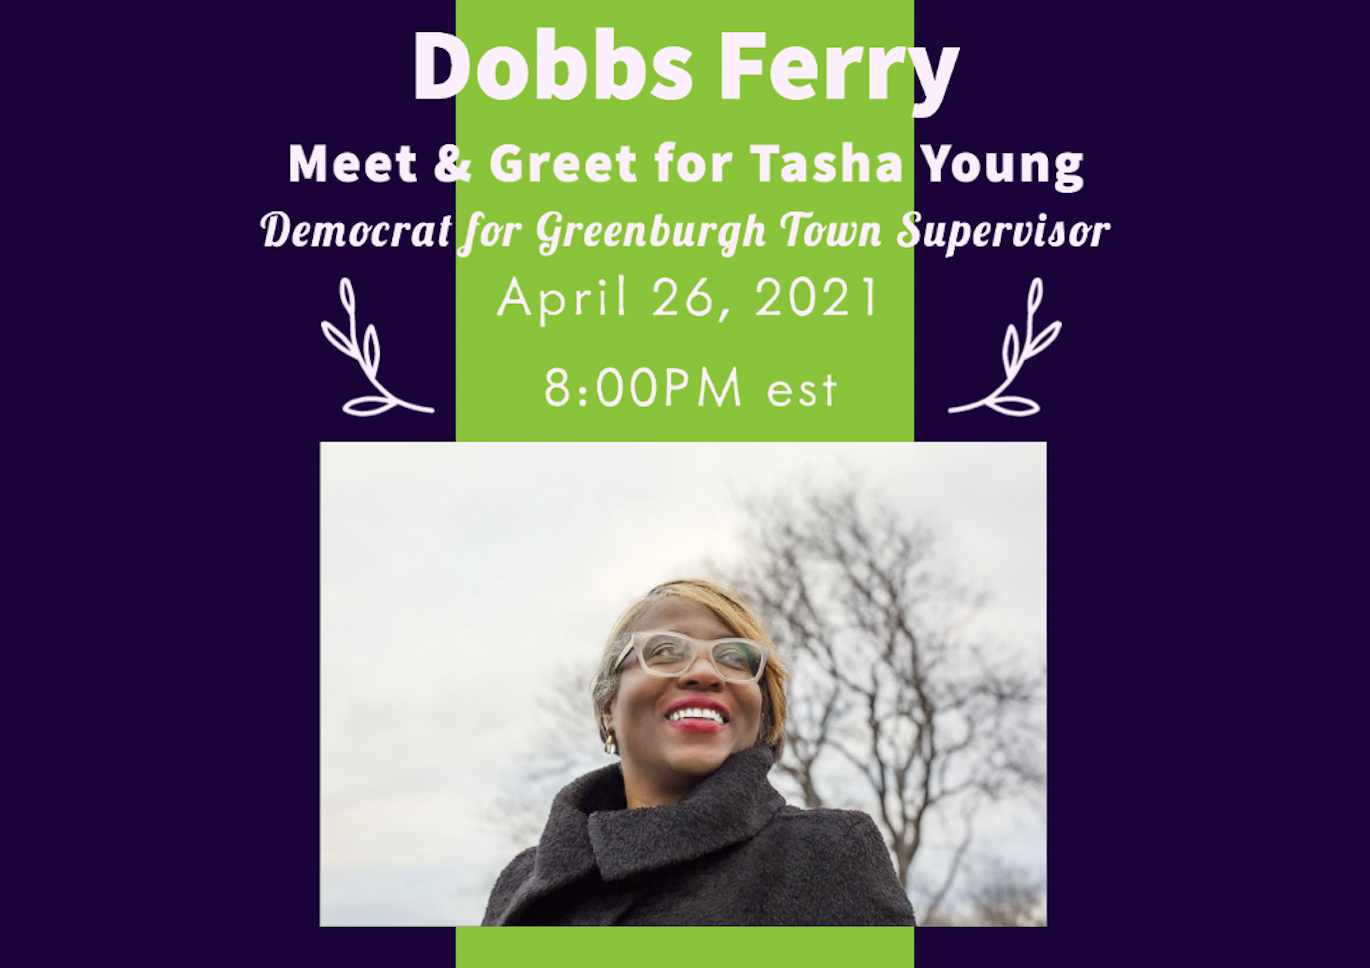 Candidate for Greenburgh Supervisor Dobbs Ferry Meet and Greet poster